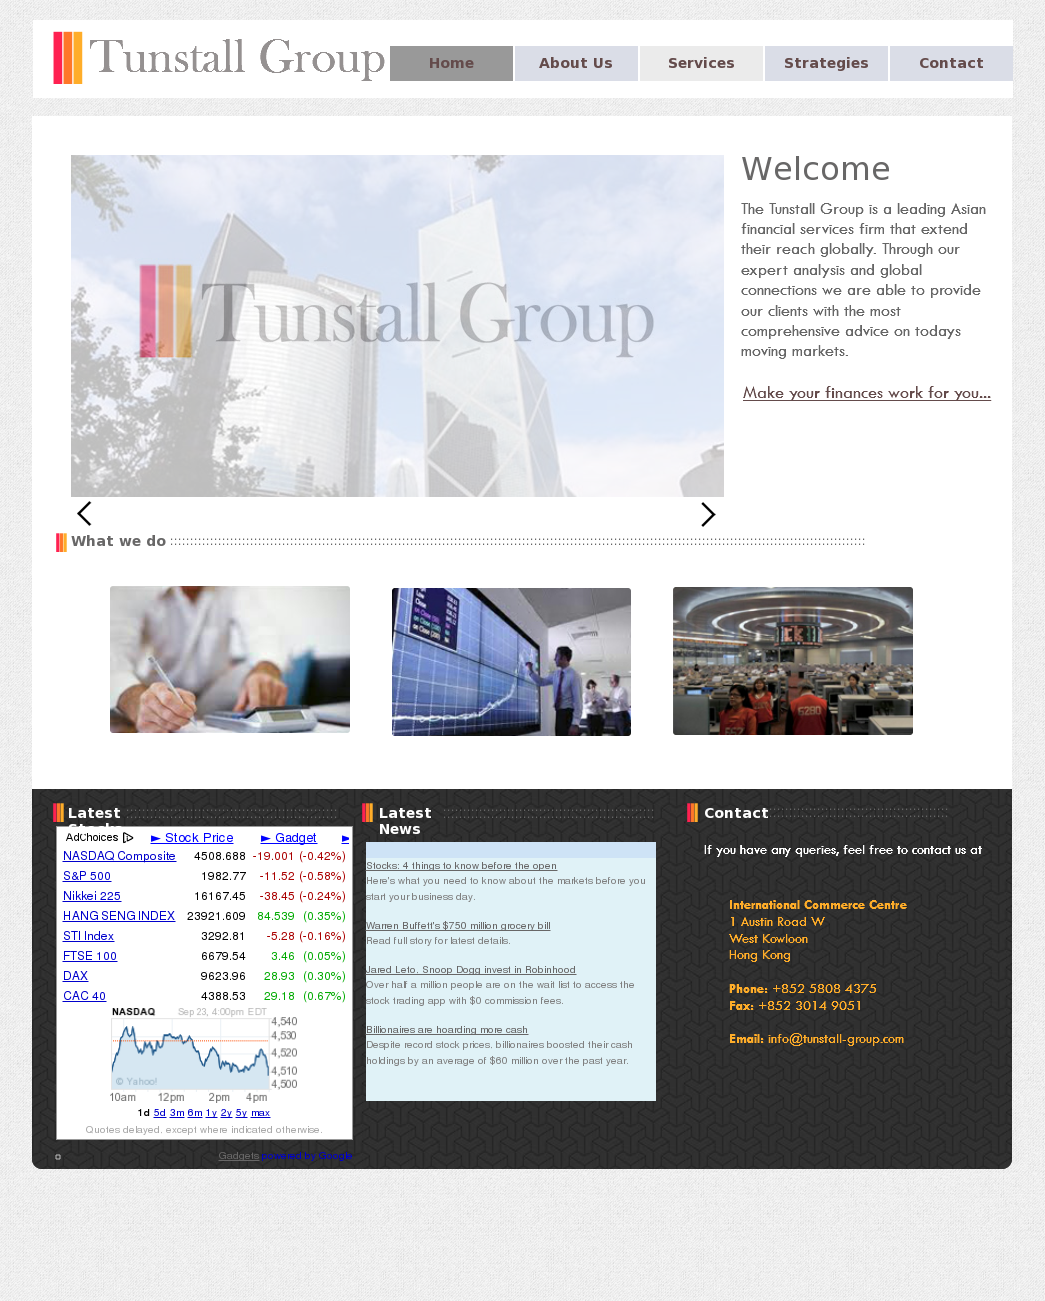 Tunstall Group Competitors, Revenue and Employees - Owler